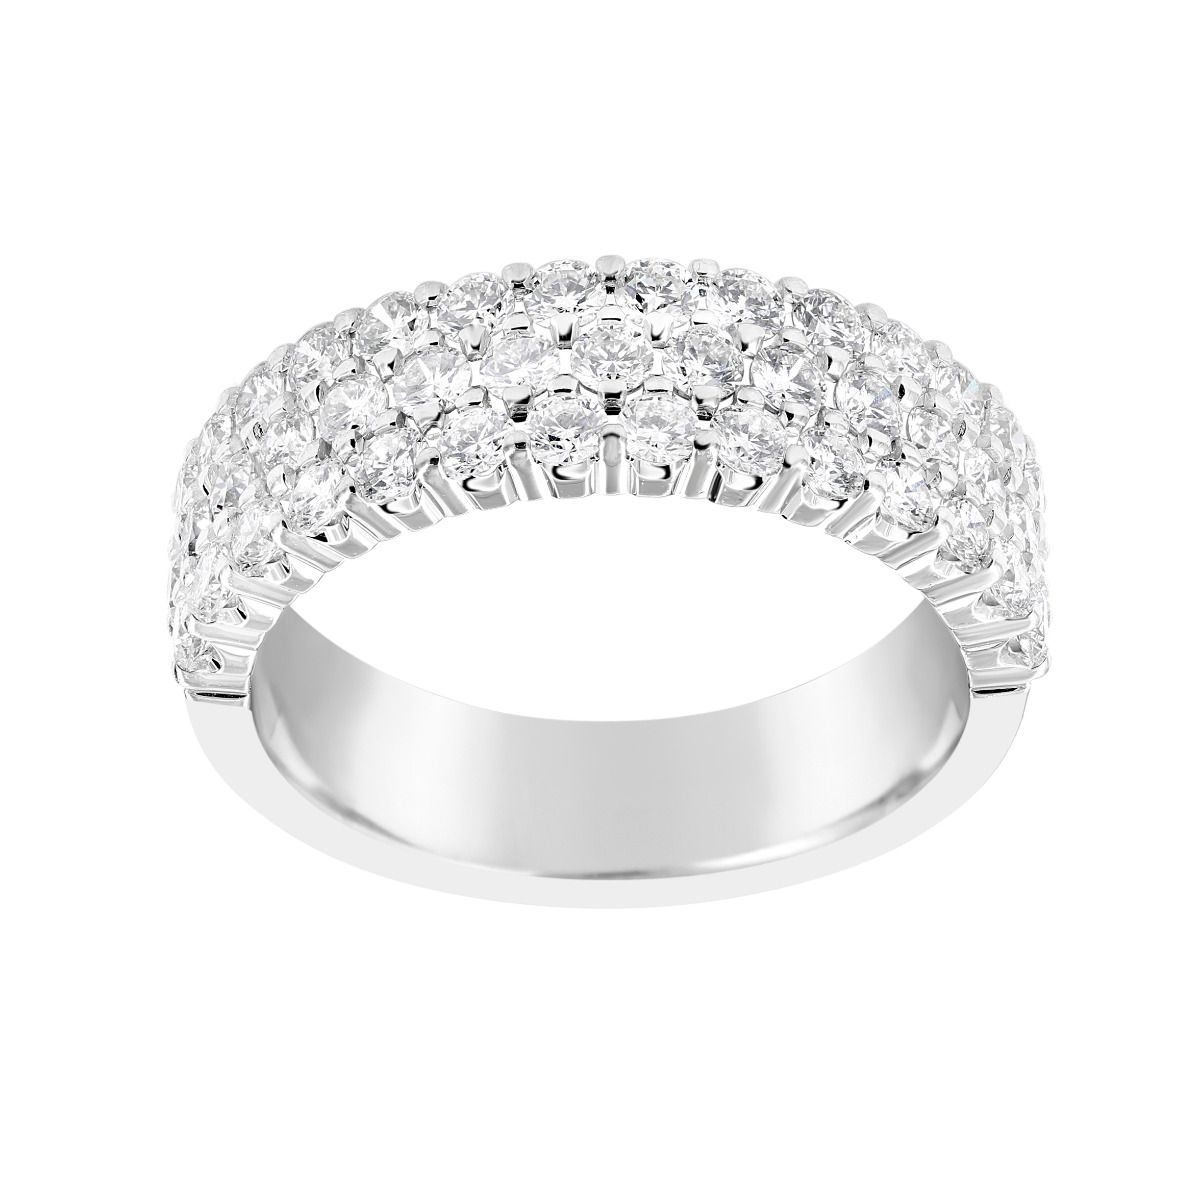 Twolondon 14k White Gold Three Row Diamond Anniversary Band Intended For Most Current Diamond Three Row Anniversary Bands In White Gold (View 2 of 25)